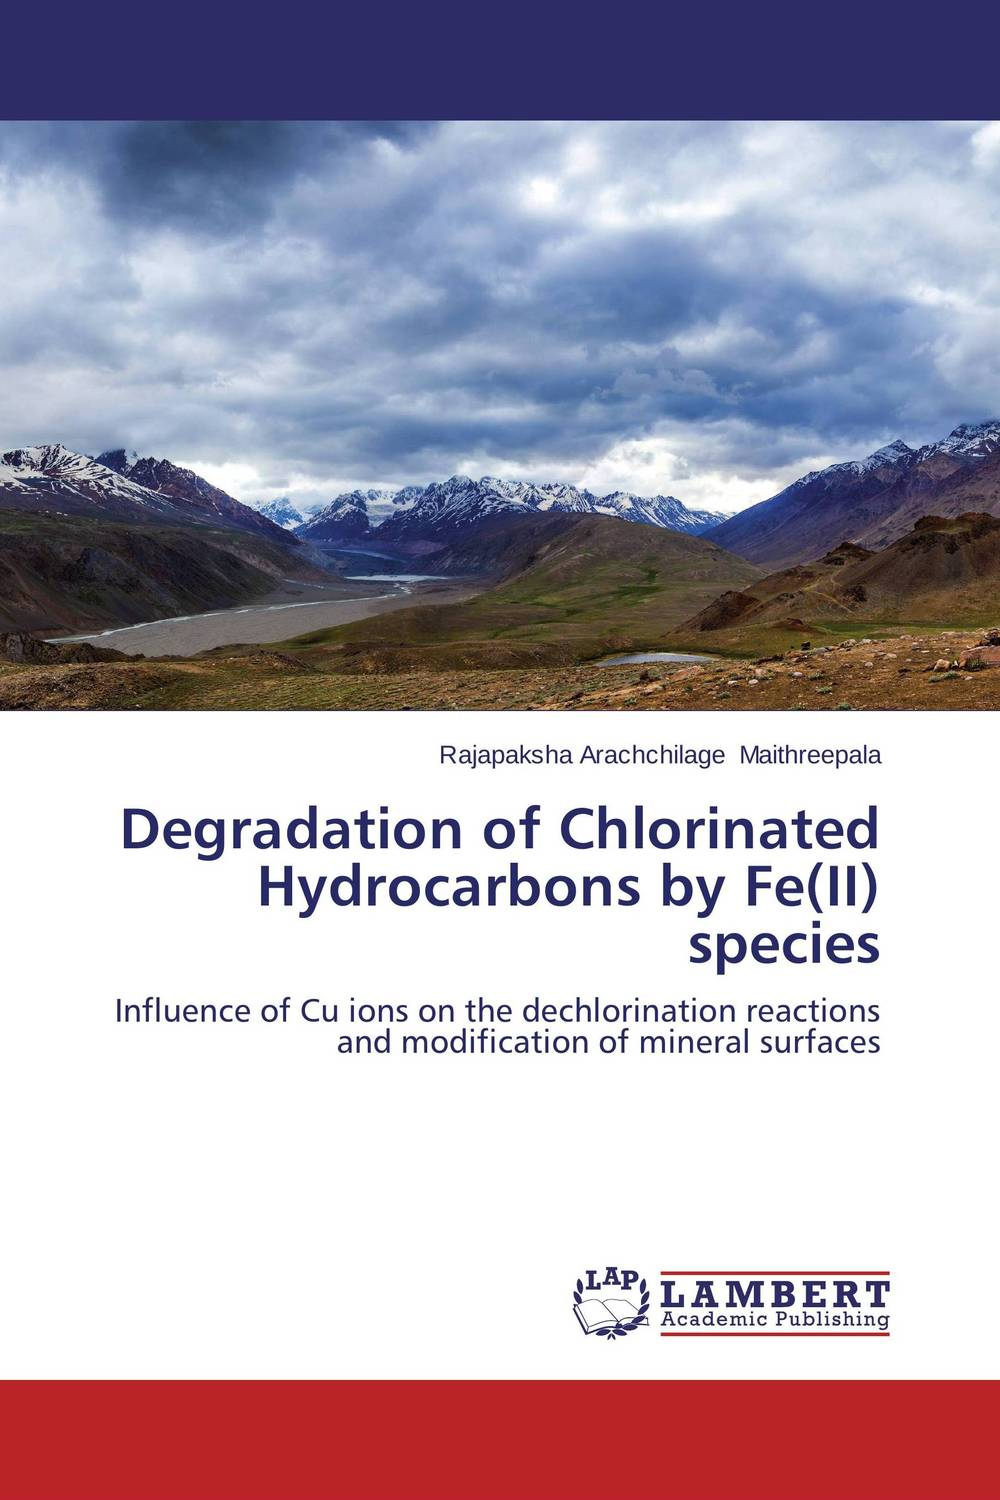 Degradation of Chlorinated Hydrocarbons by Fe(II) species benzo a pyrene bap degradation by bacillus subtilis bmt4i mtcc 9447